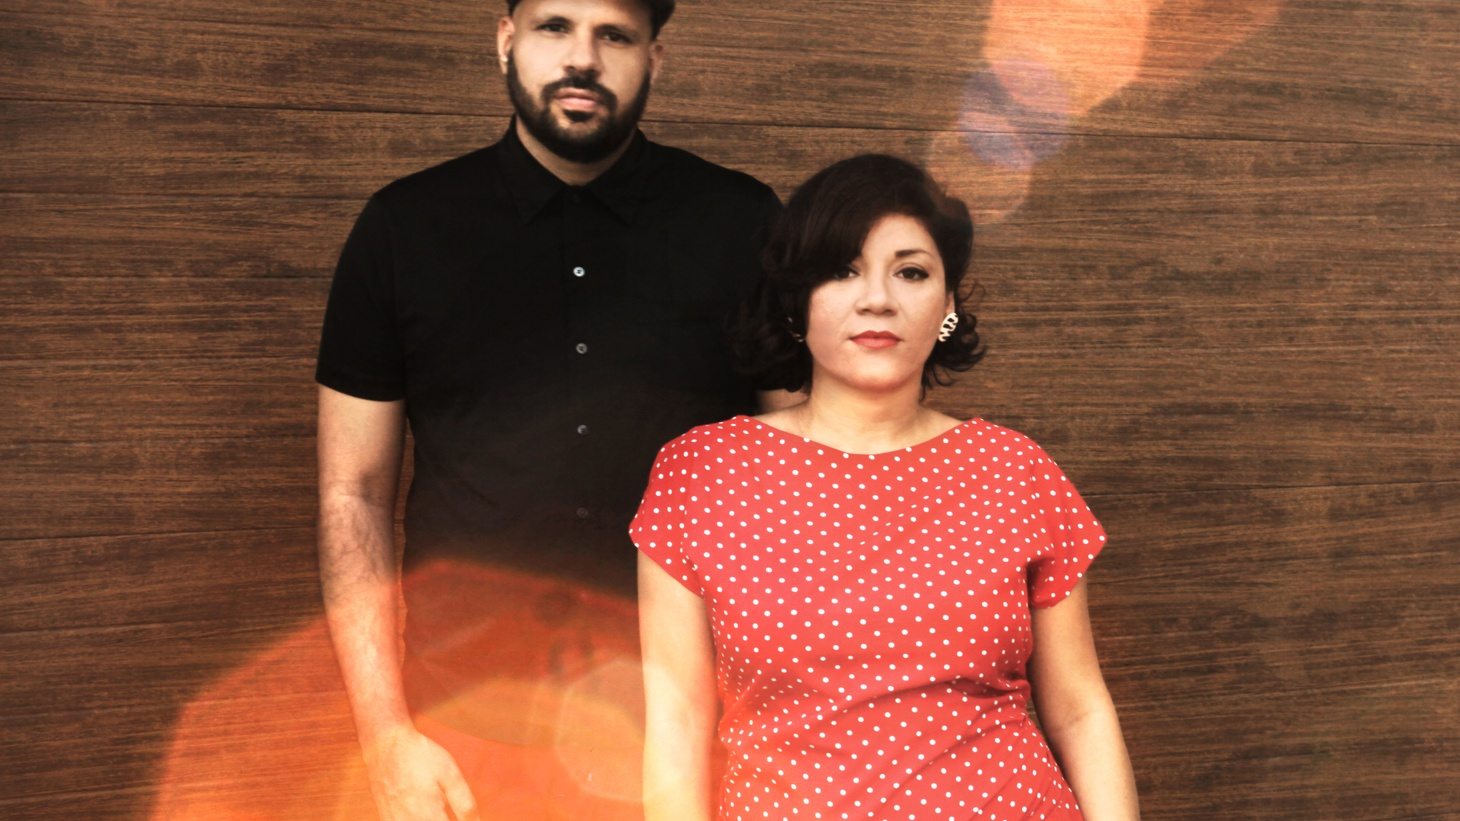 Andres Ponce and Sofy Encanto are united by marriage and musically as Elastic Bond, but that's not all that they have merged together. The Miami couple has fused cultures that reflect their surroundings -- folkloric rhythms and electronic beats -- on their funky new album Honey Bun.